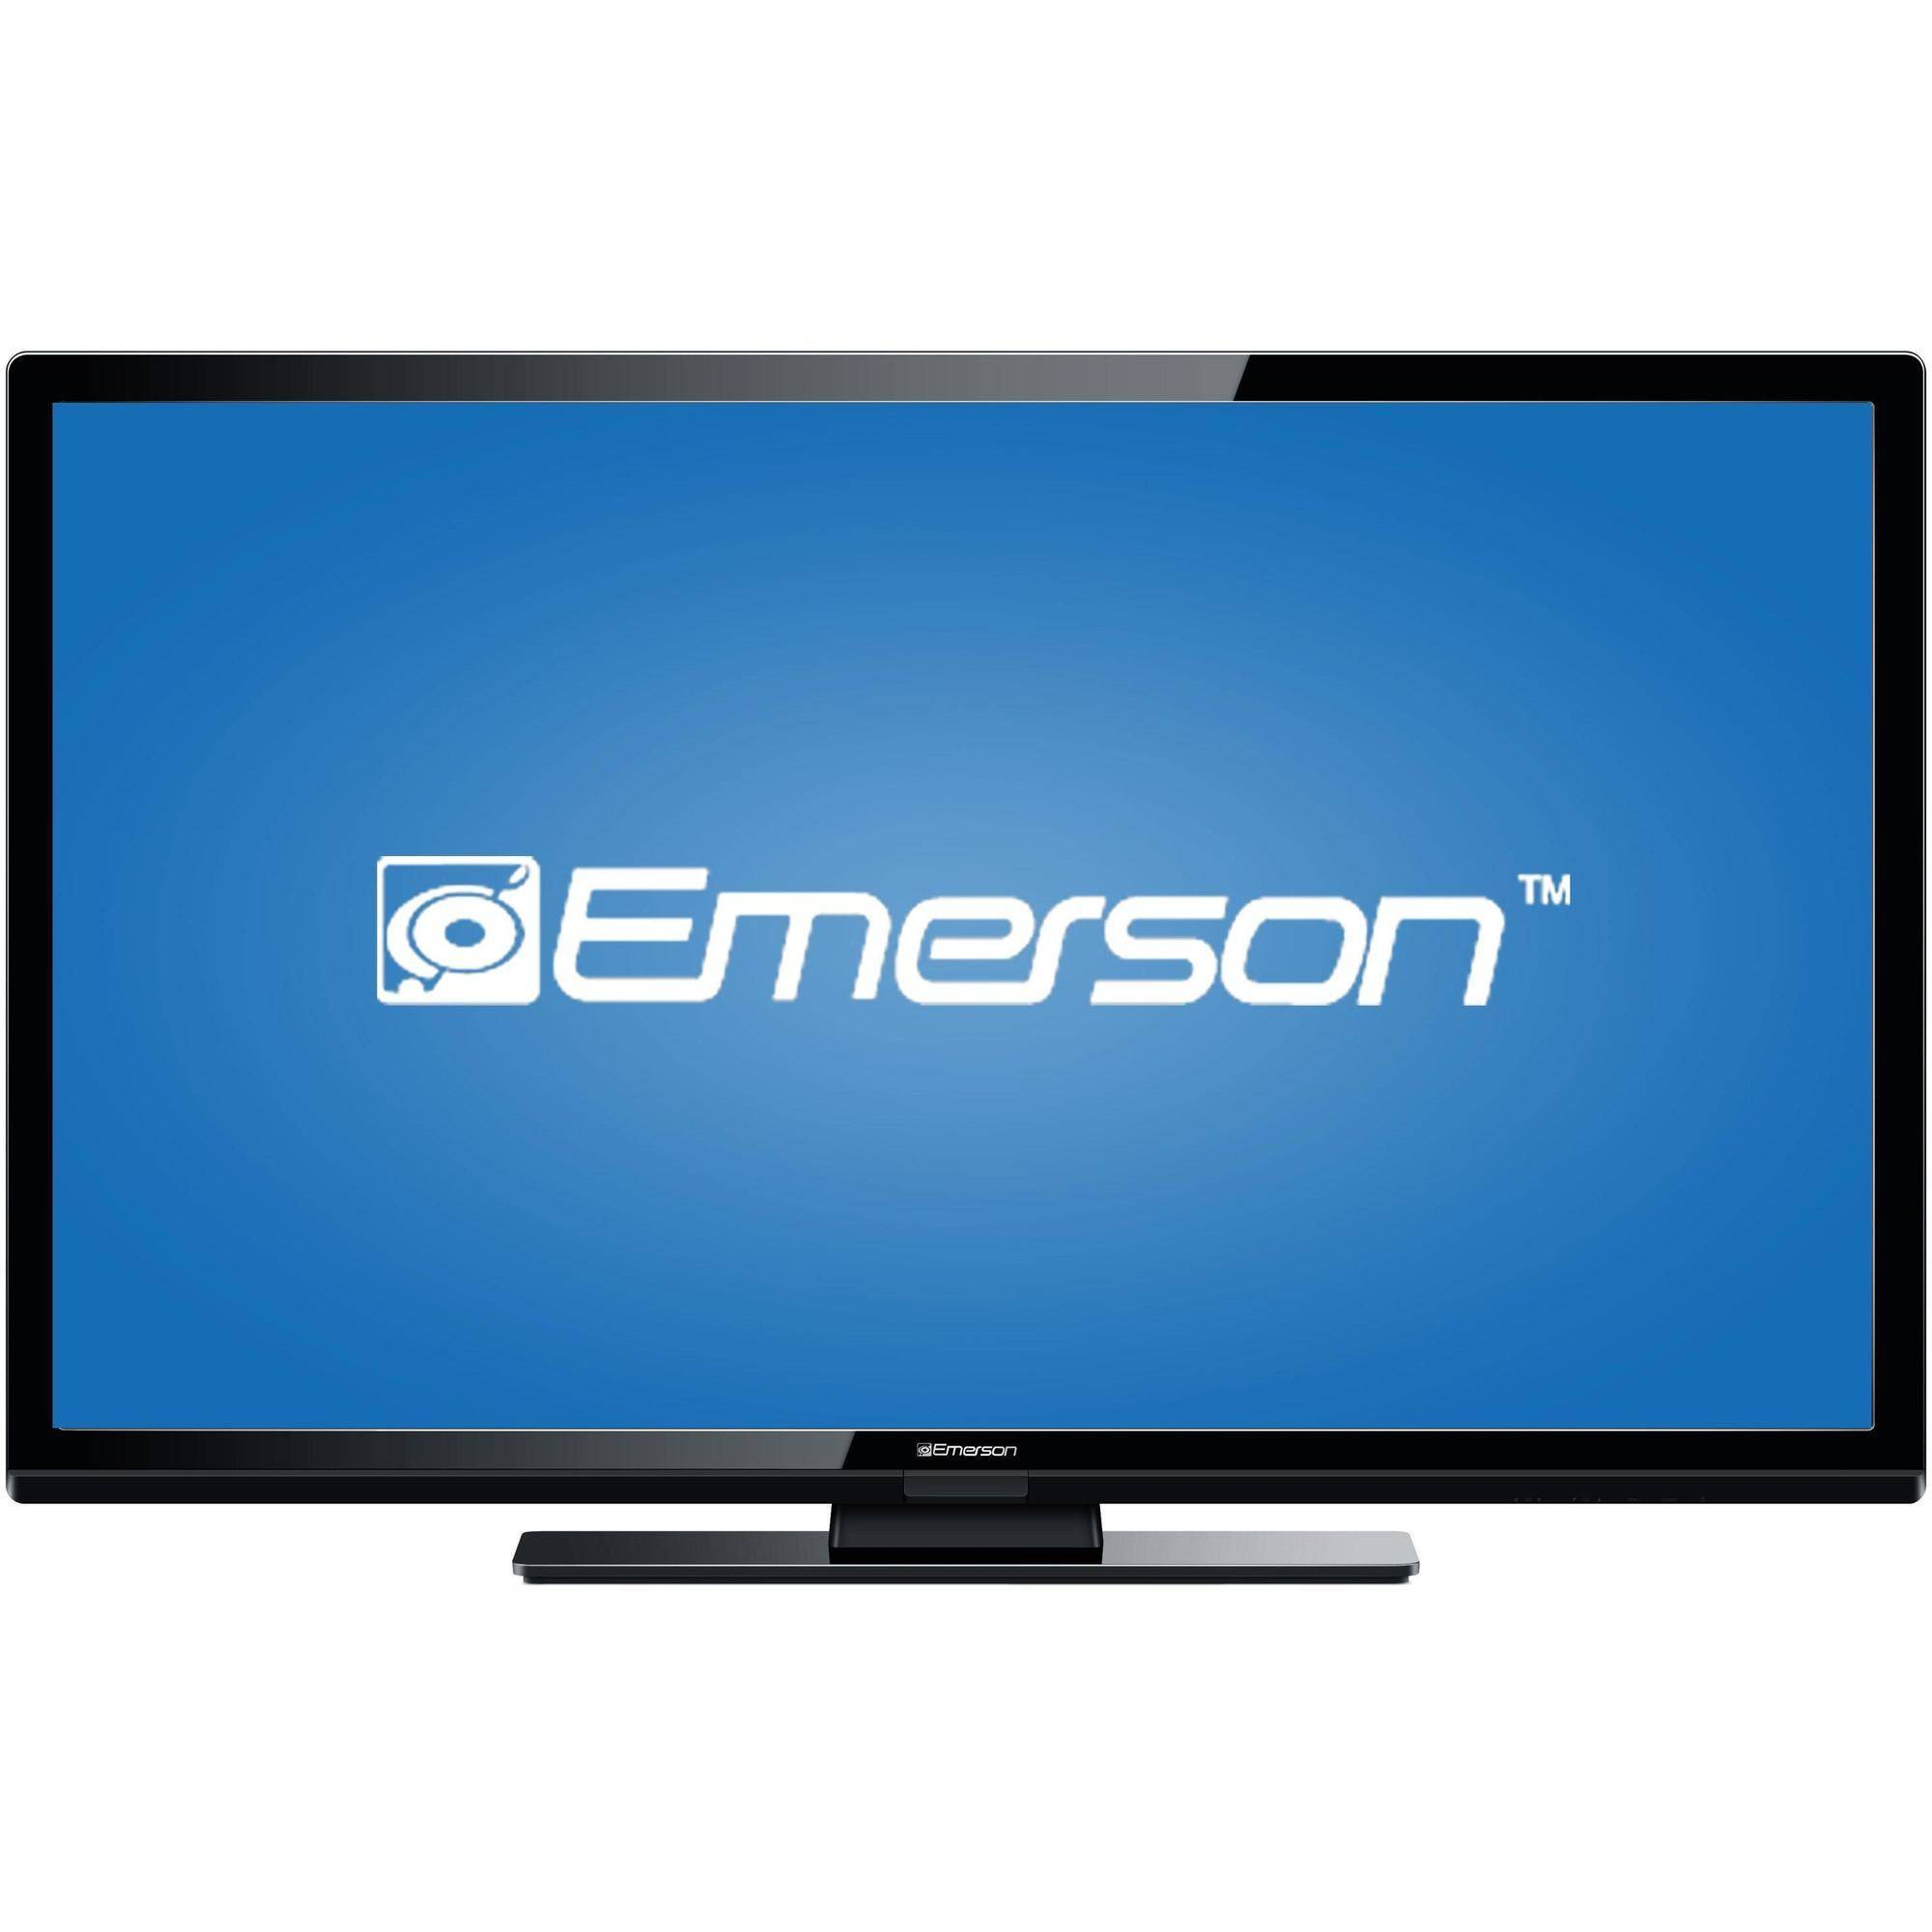 "Refurbished Emerson LF501EM6F 50"" 1080p 120Hz Class LED HDTV"